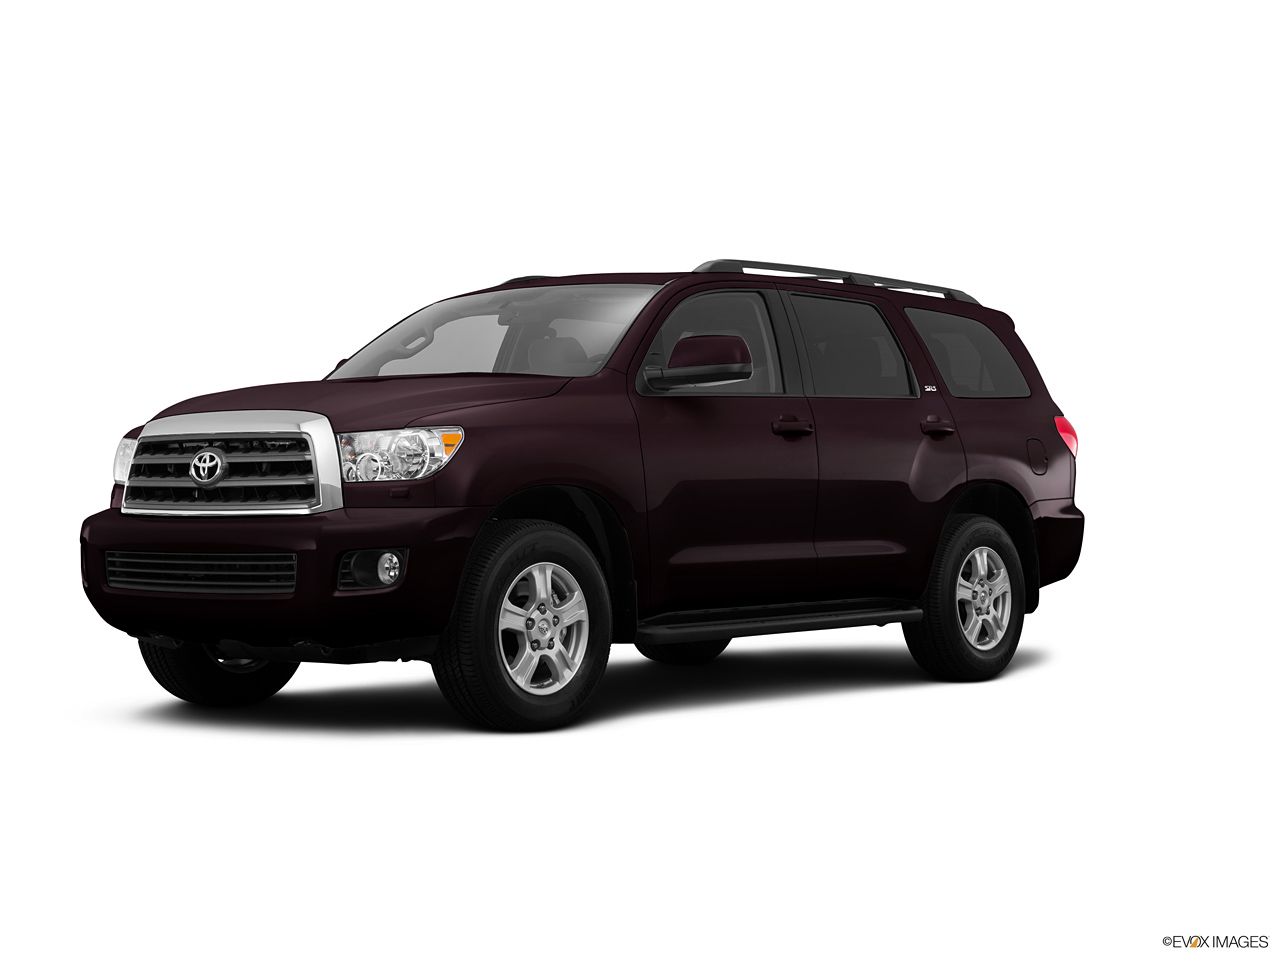 toyota sequoia 2016 5 7l vxr in uae new car prices specs reviews photos yallamotor. Black Bedroom Furniture Sets. Home Design Ideas